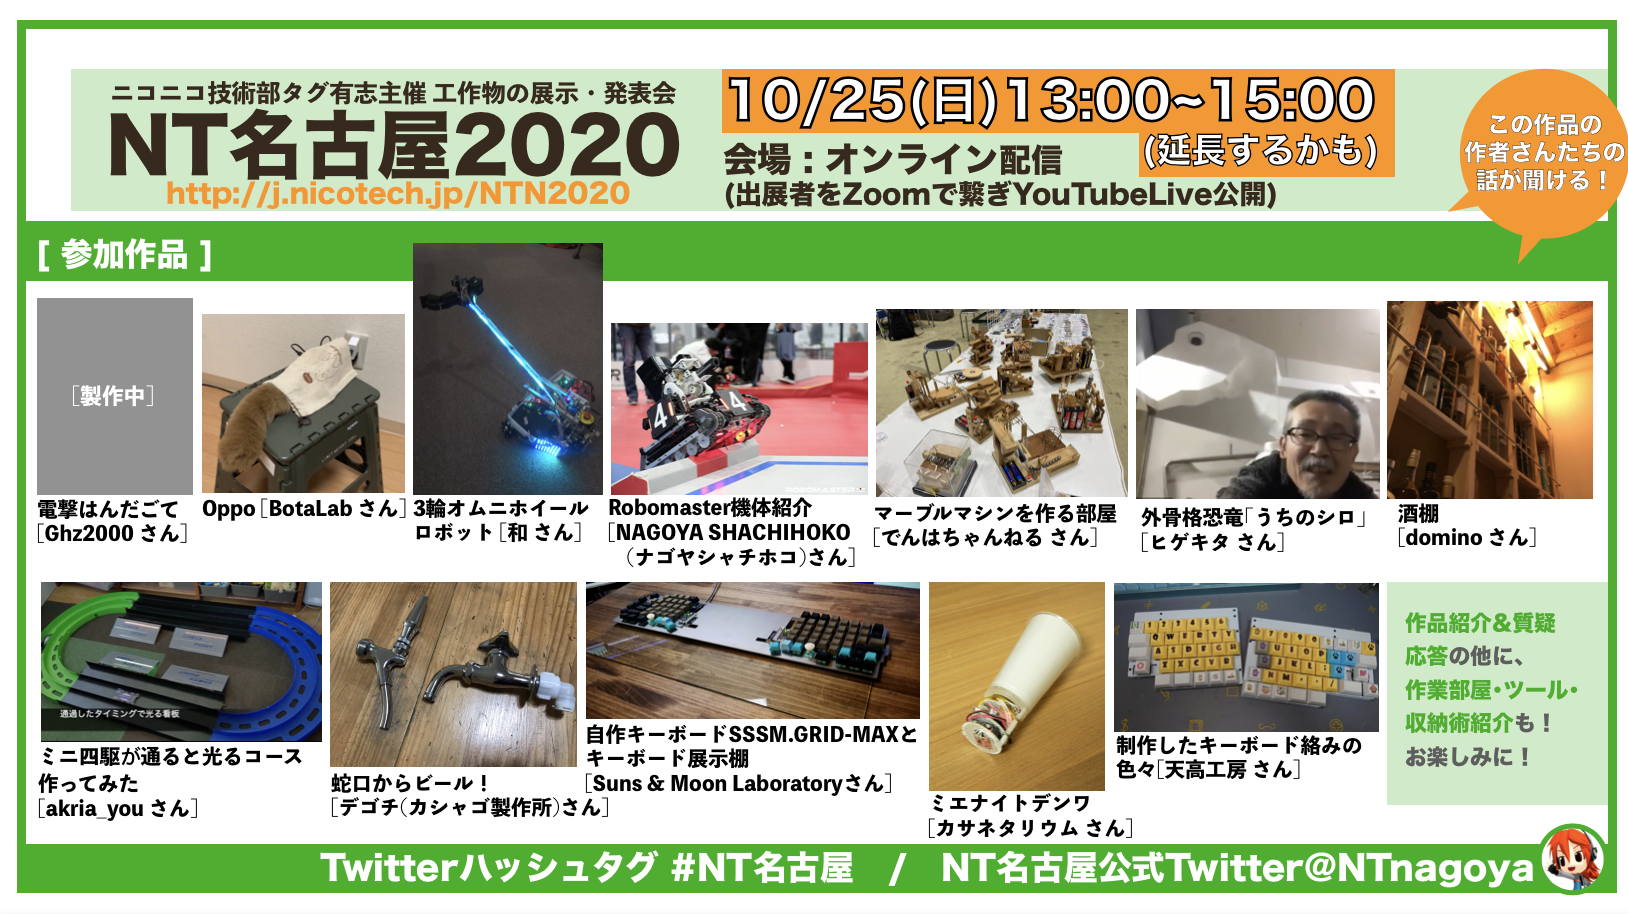 NT名古屋2020_10_24.png